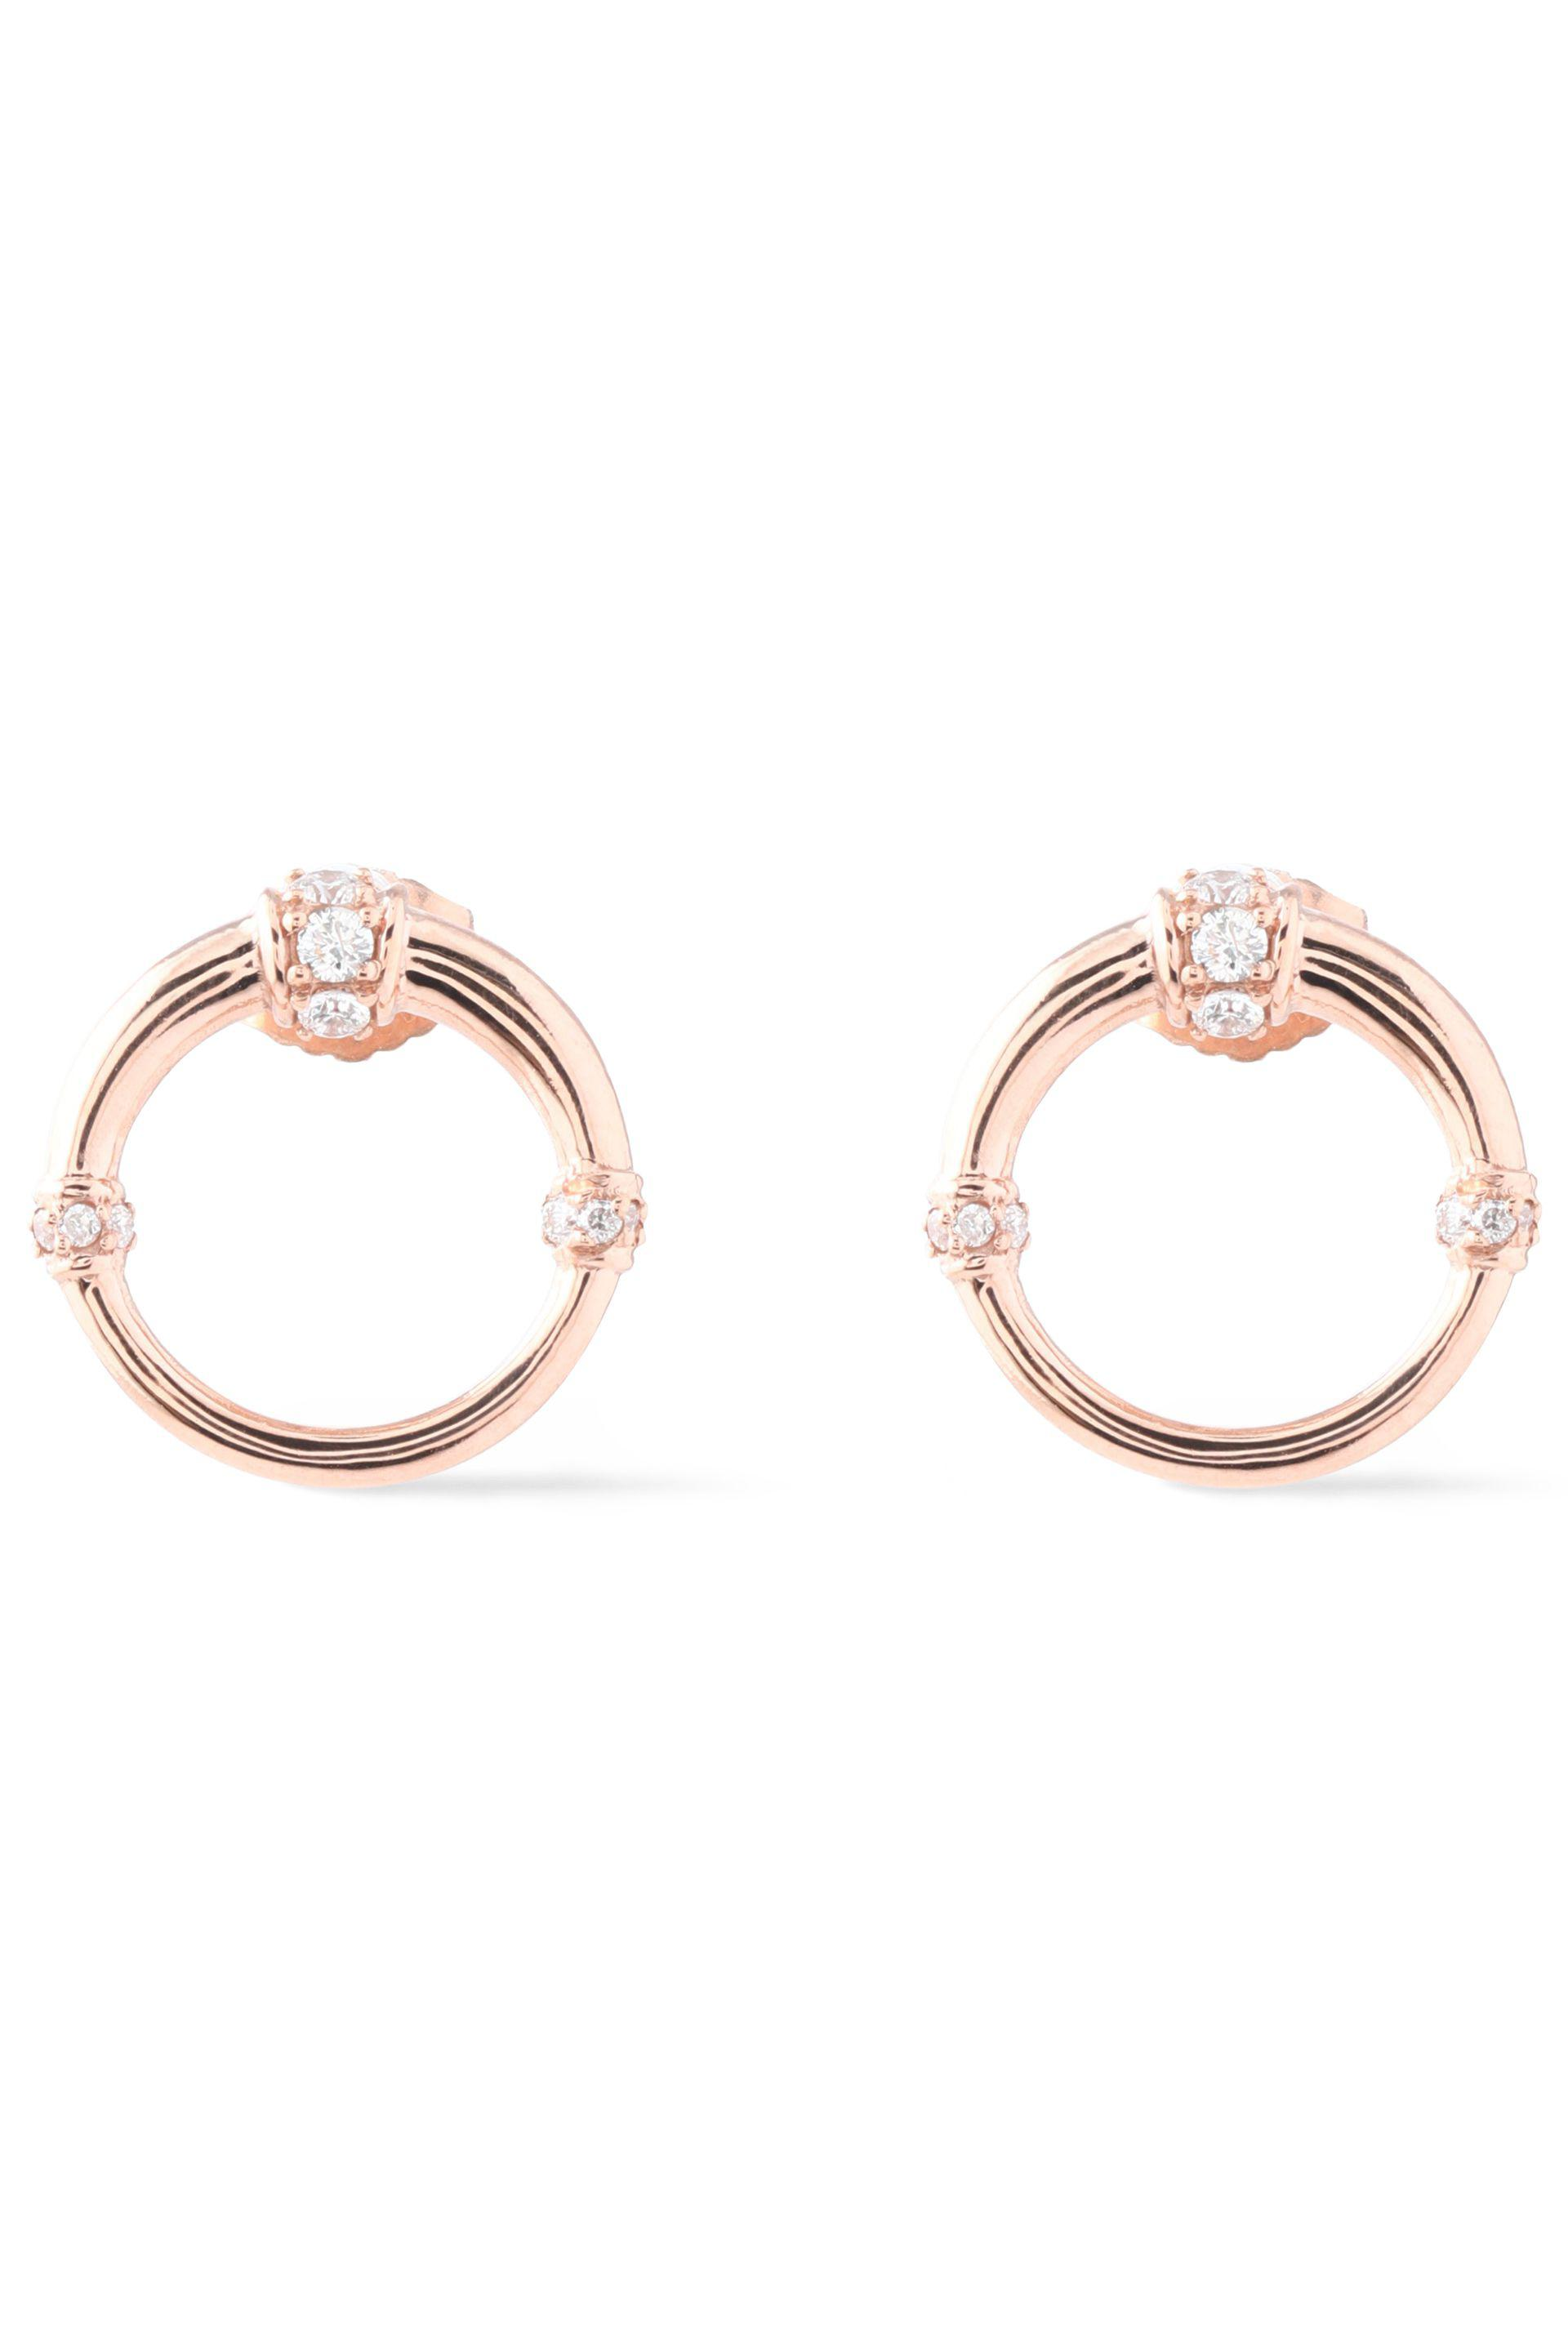 Carbon & Hyde Carbon & Hyde Woman Dharma 14-karat Rose Gold Diamond Earrings Rose Gold Size AwE9qm4